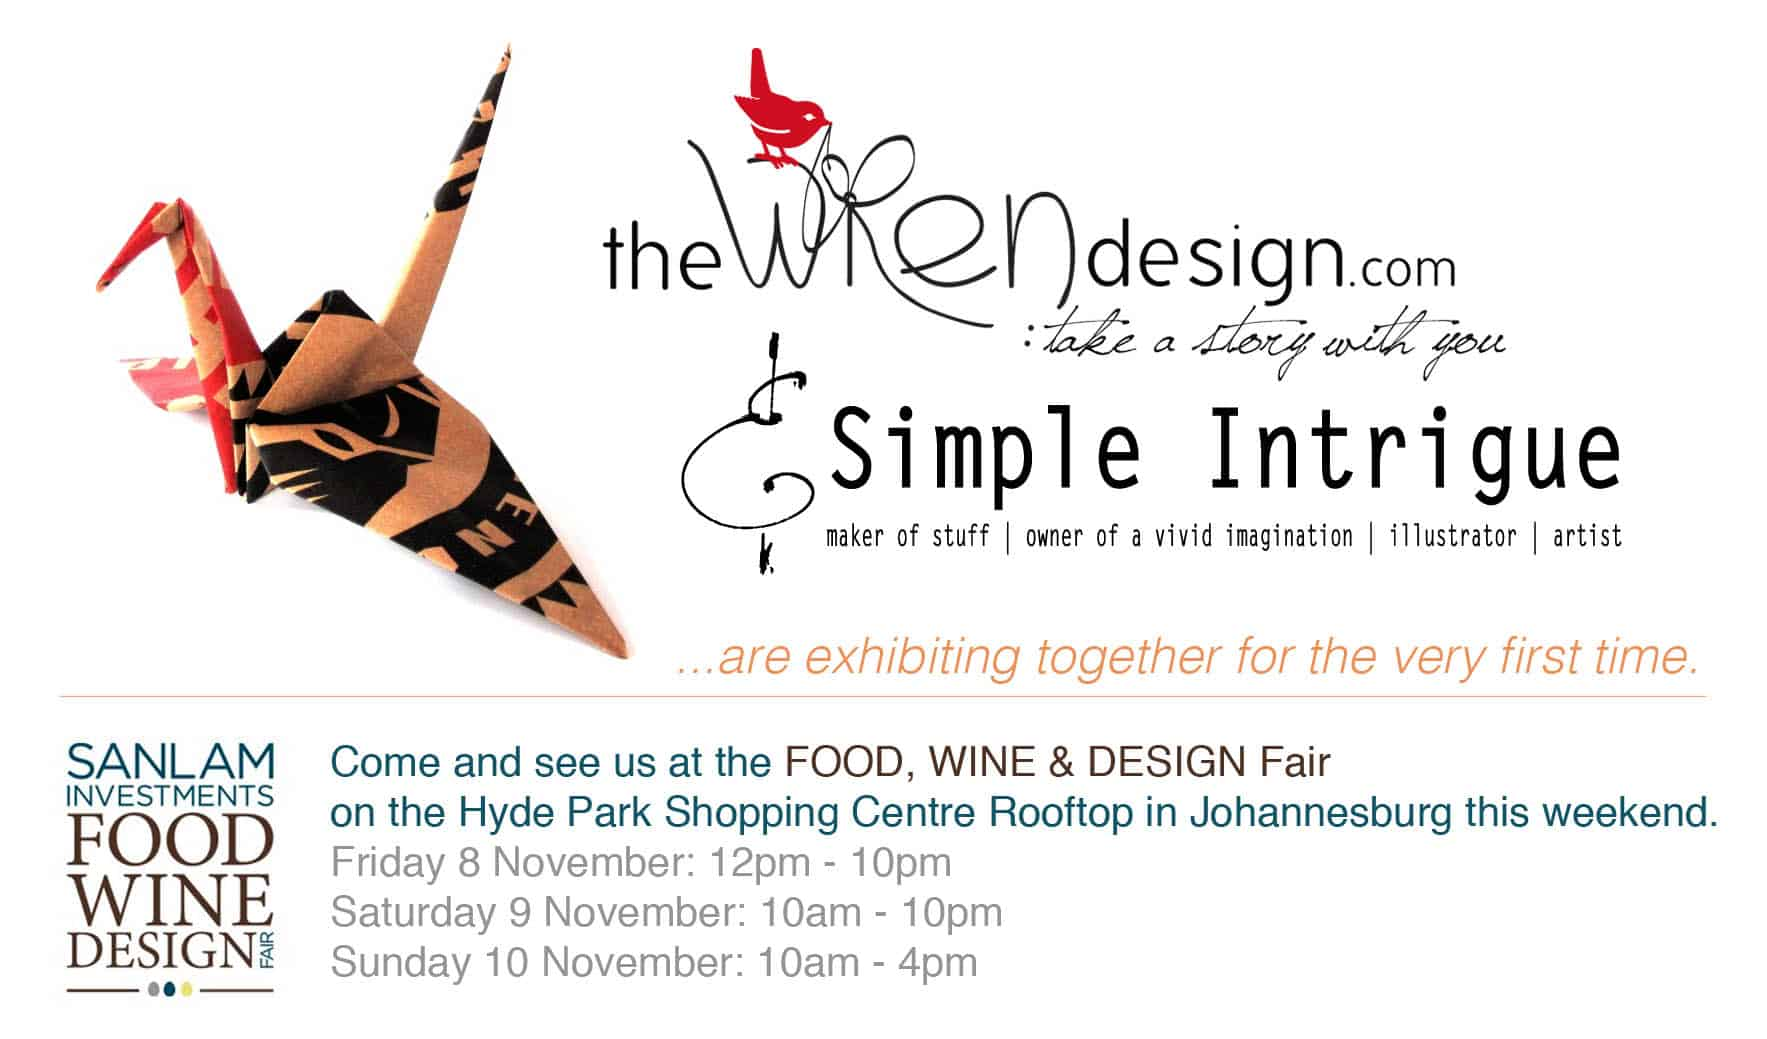 Food, Wine & Design - come and see us copy